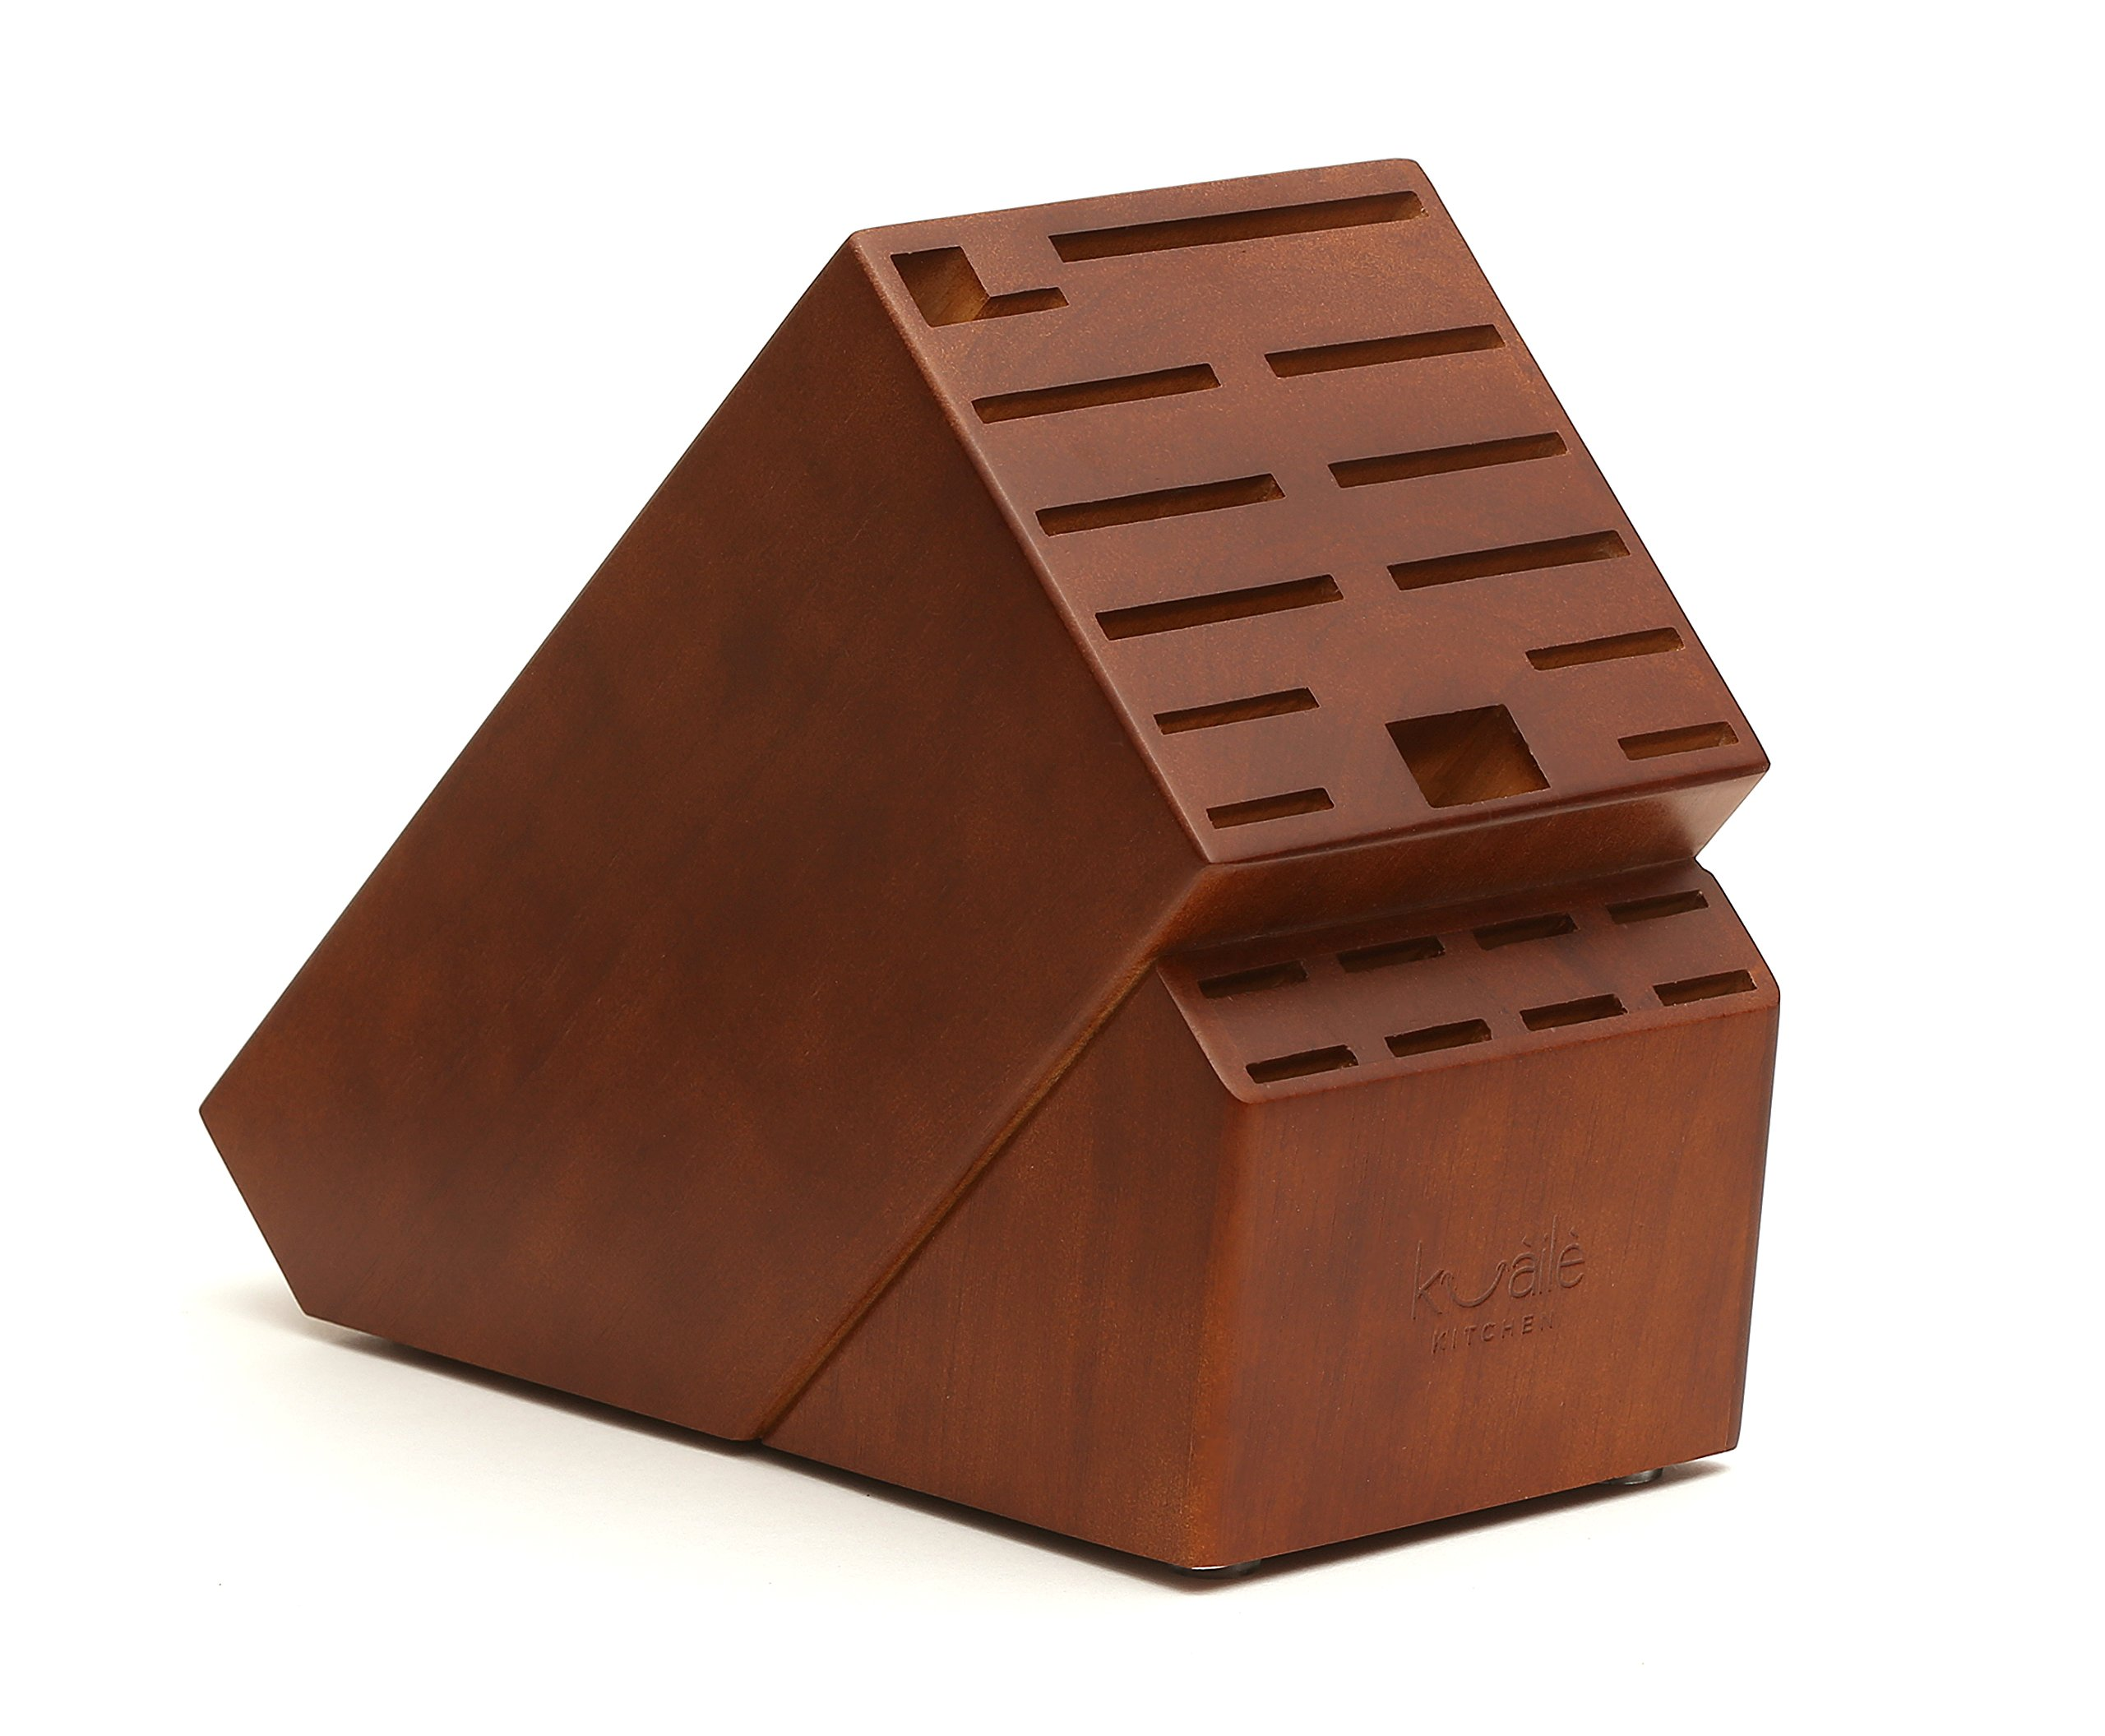 21 Slot Universal Solid Wood Kitchen Knife Storage Block (Walnut Stained Hardwood) Without Knives